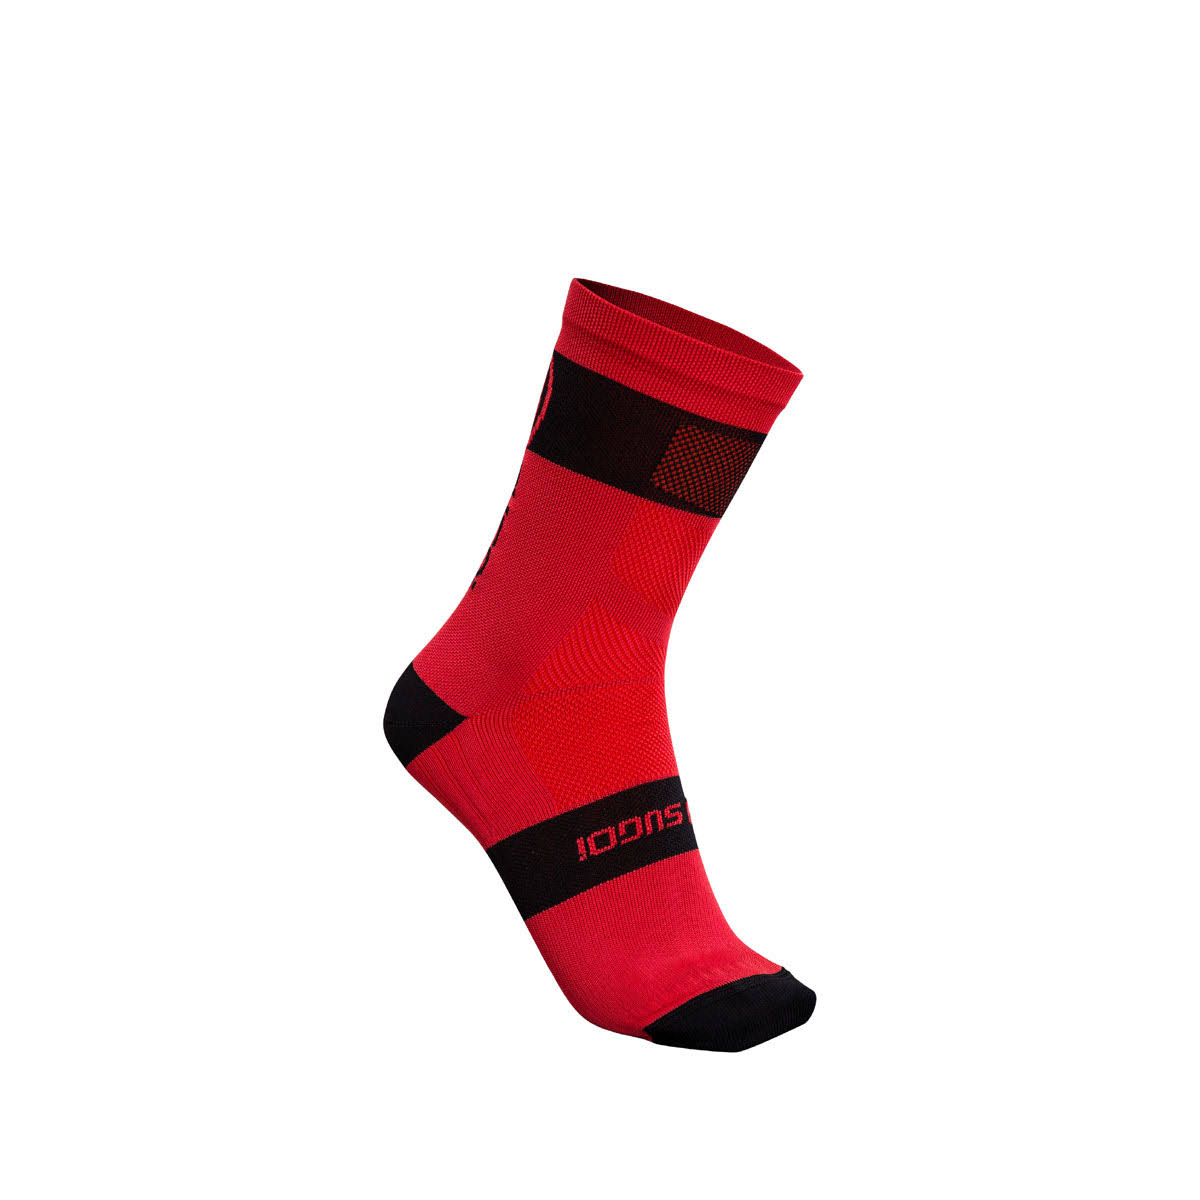 Sugoi Mens RS Crew Socks - Chili Red, Small